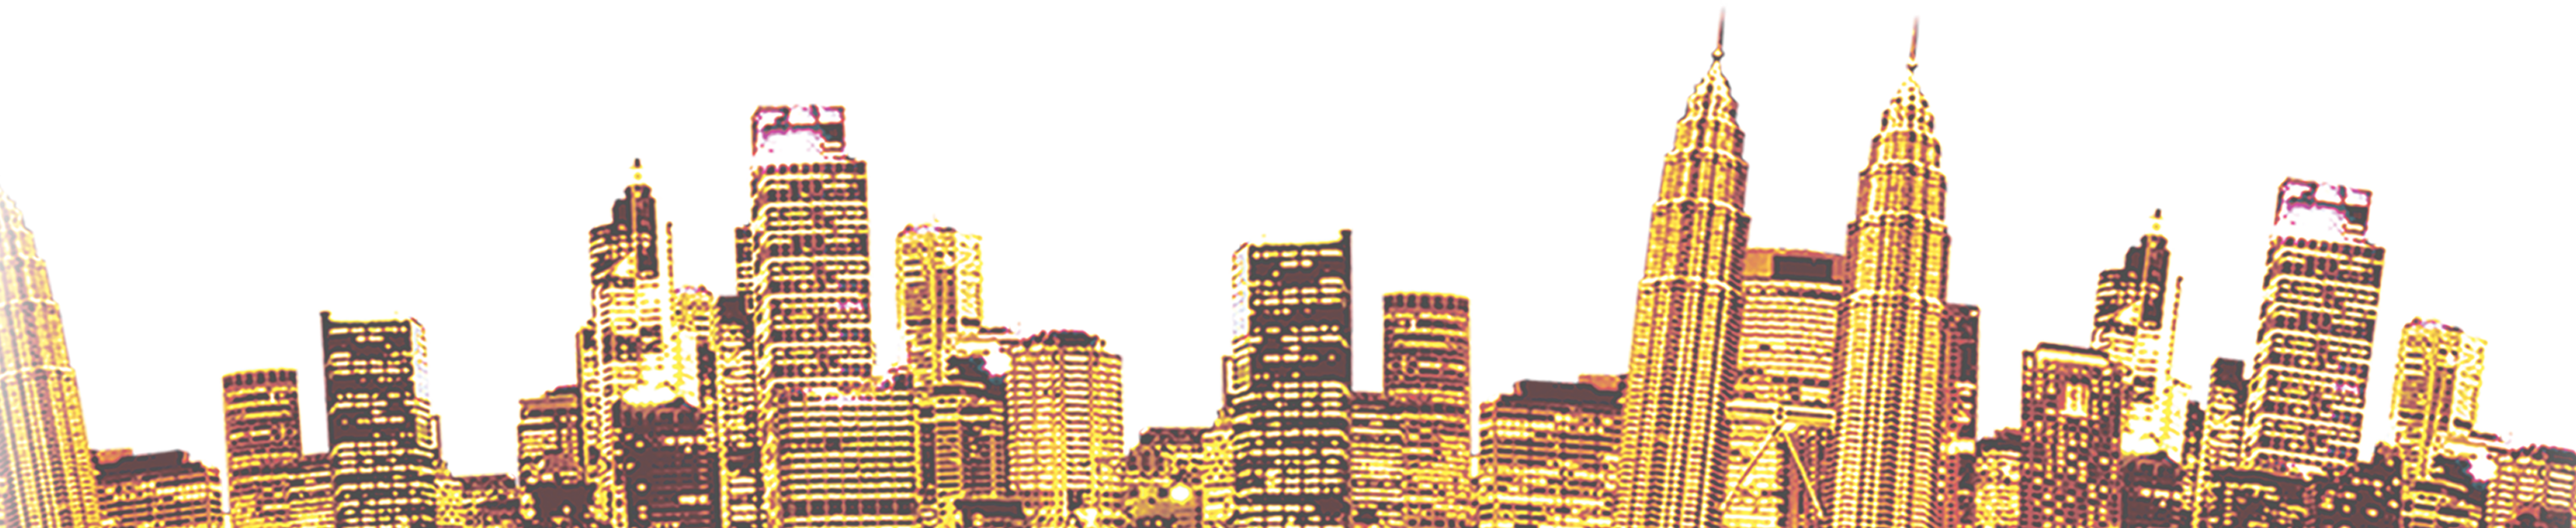 Isomia skyscraper silhouette png. Building city gold material